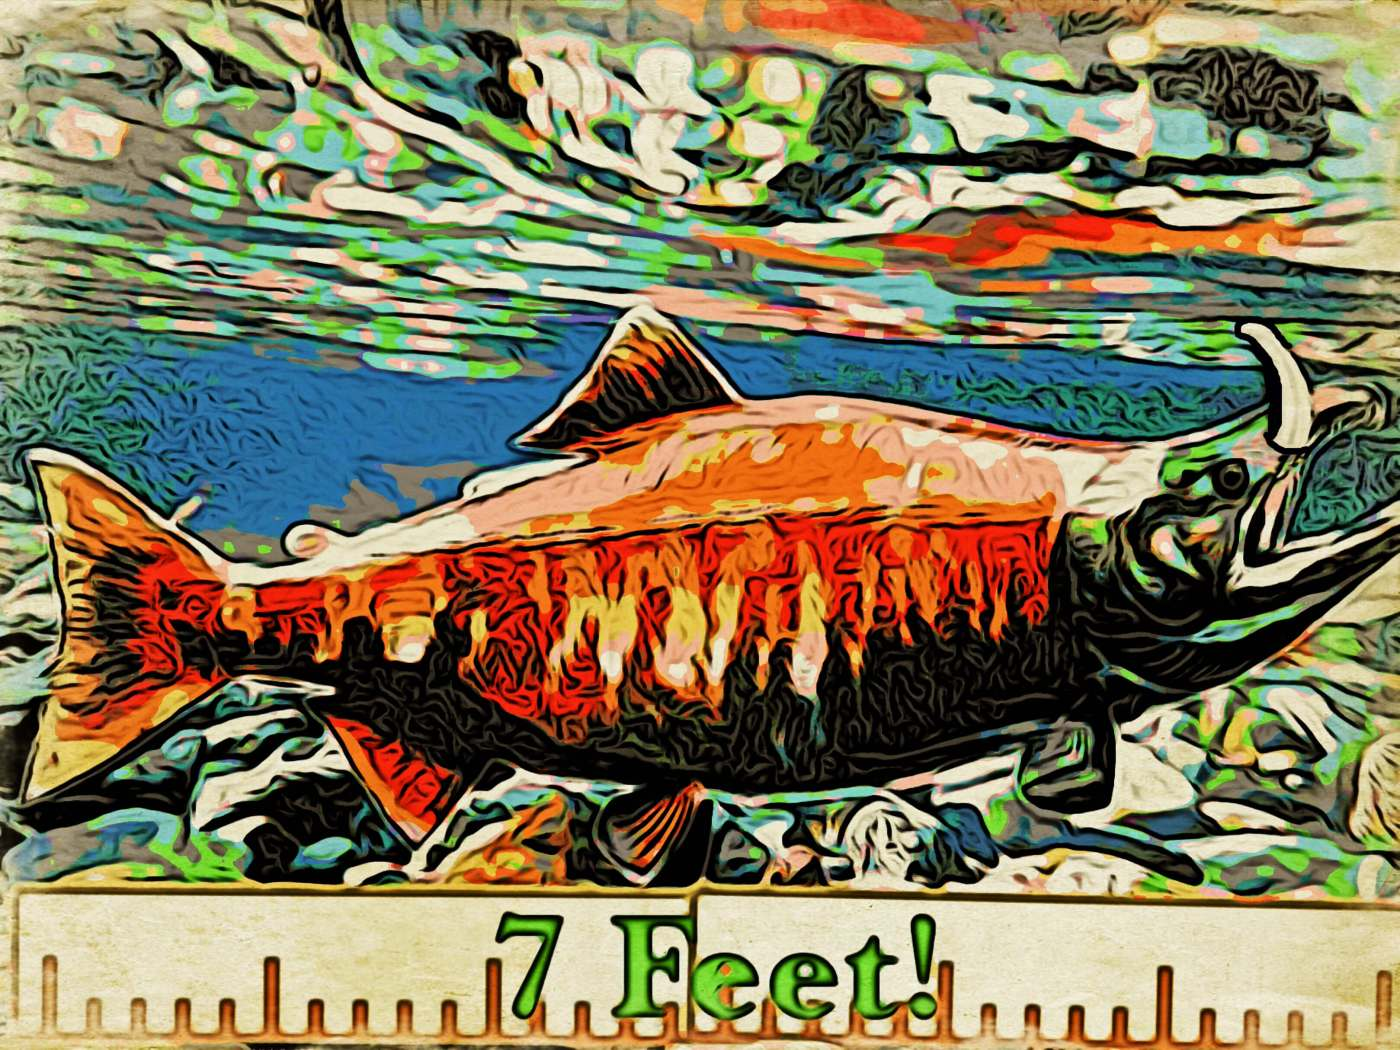 Here's my artists' rendition of the sabertooth salmon!